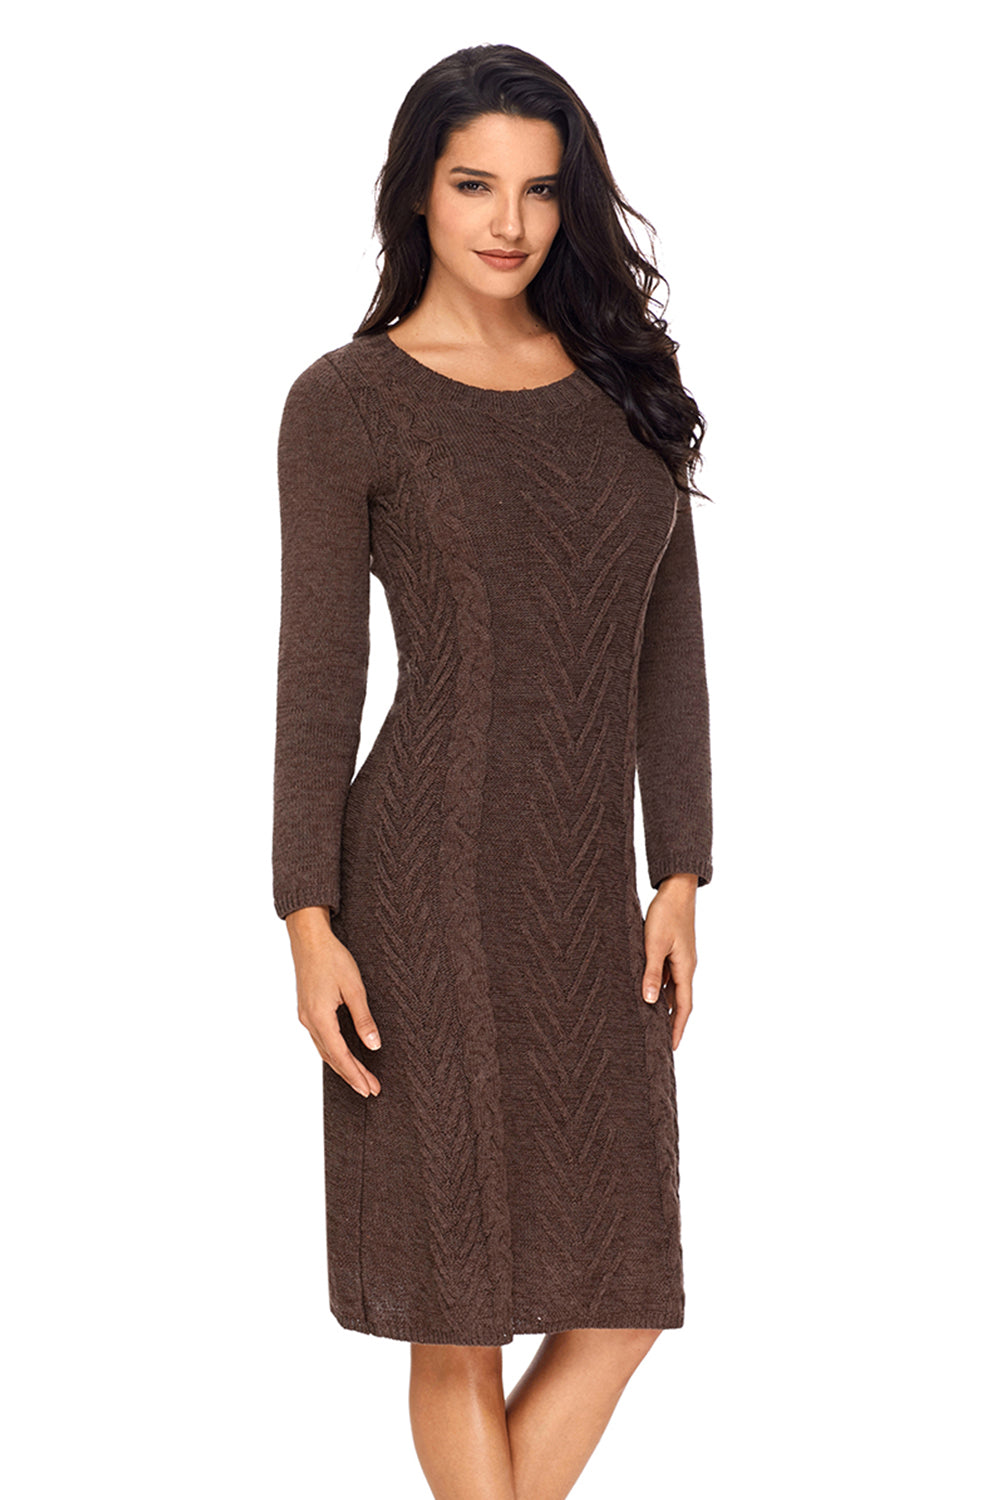 525025a5e516 Sexy Coffee Women s Hand Knitted Sweater Dress – SEXY AFFORDABLE ...